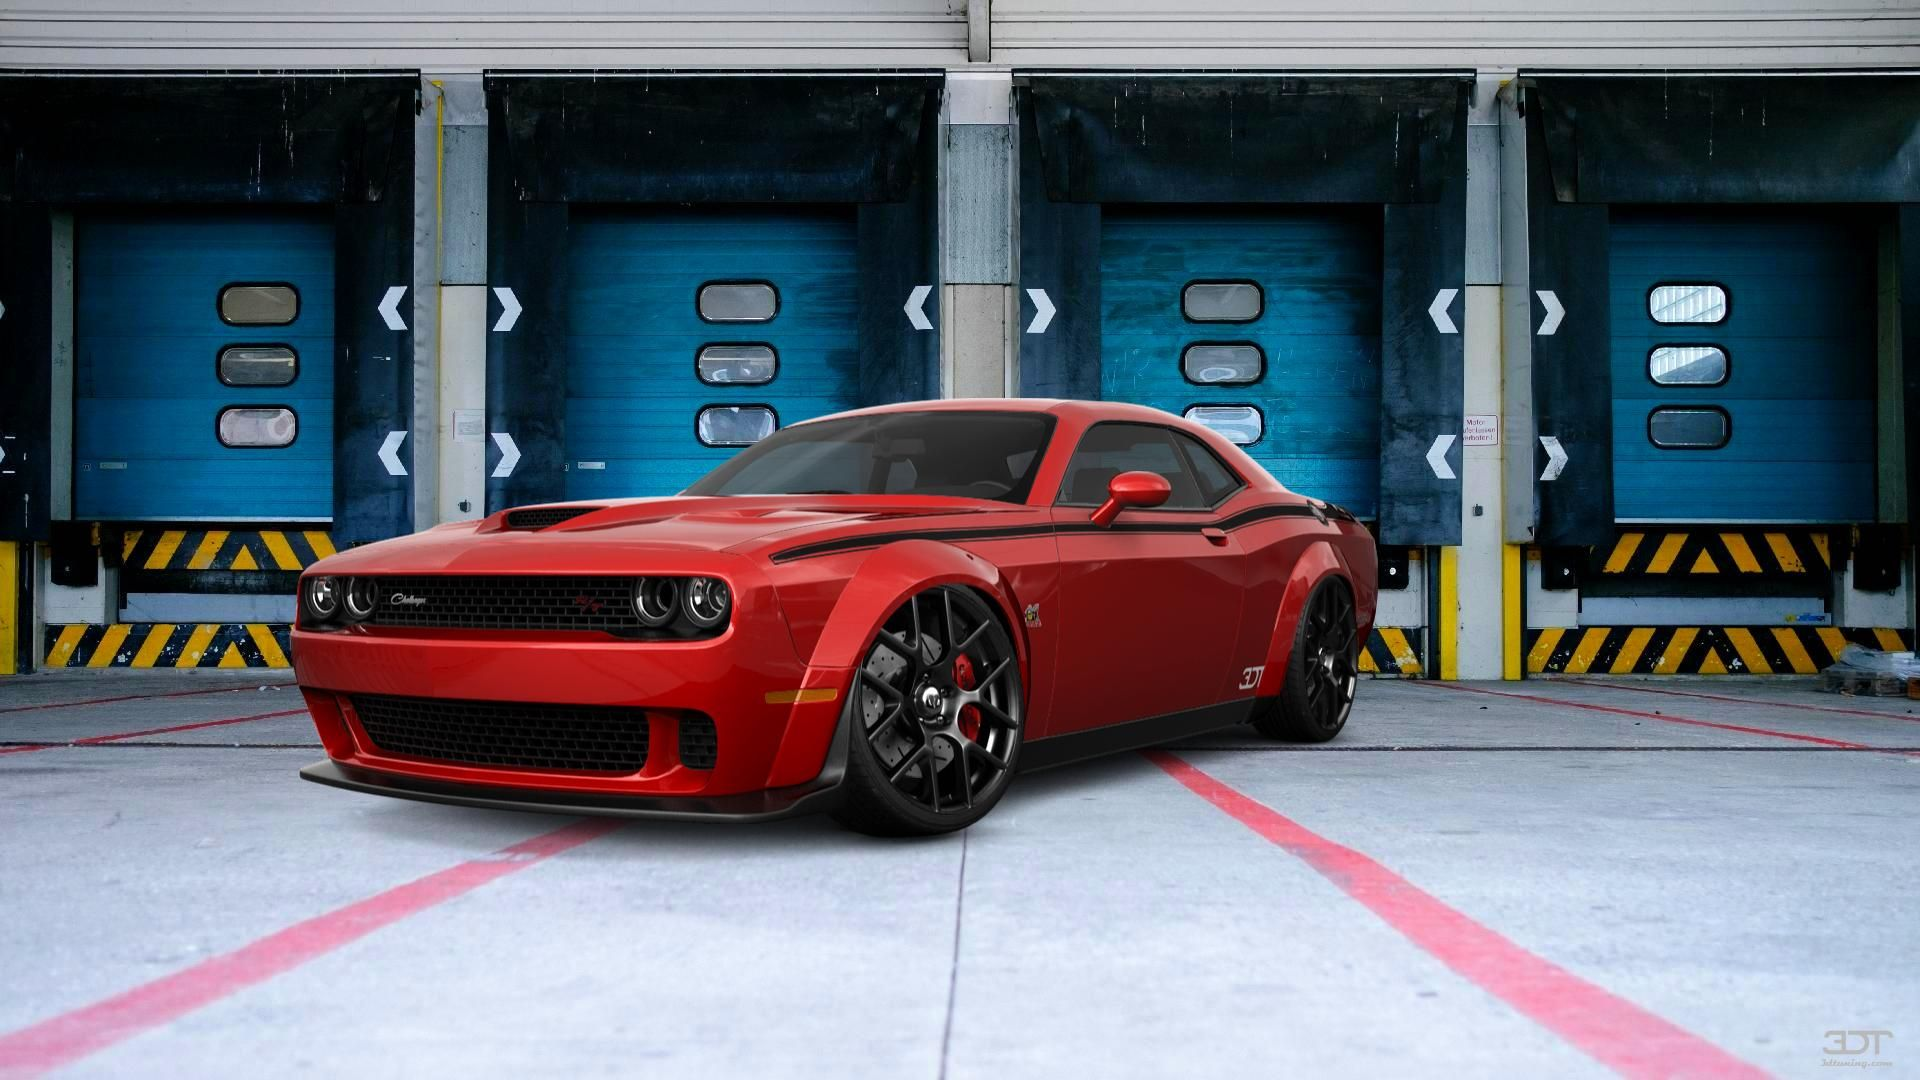 Checkout My Tuning Dodge Challenger 2008 At 3dtuning 3dtuning Tuning In 2020 Dodge Dodge Challenger Challenger